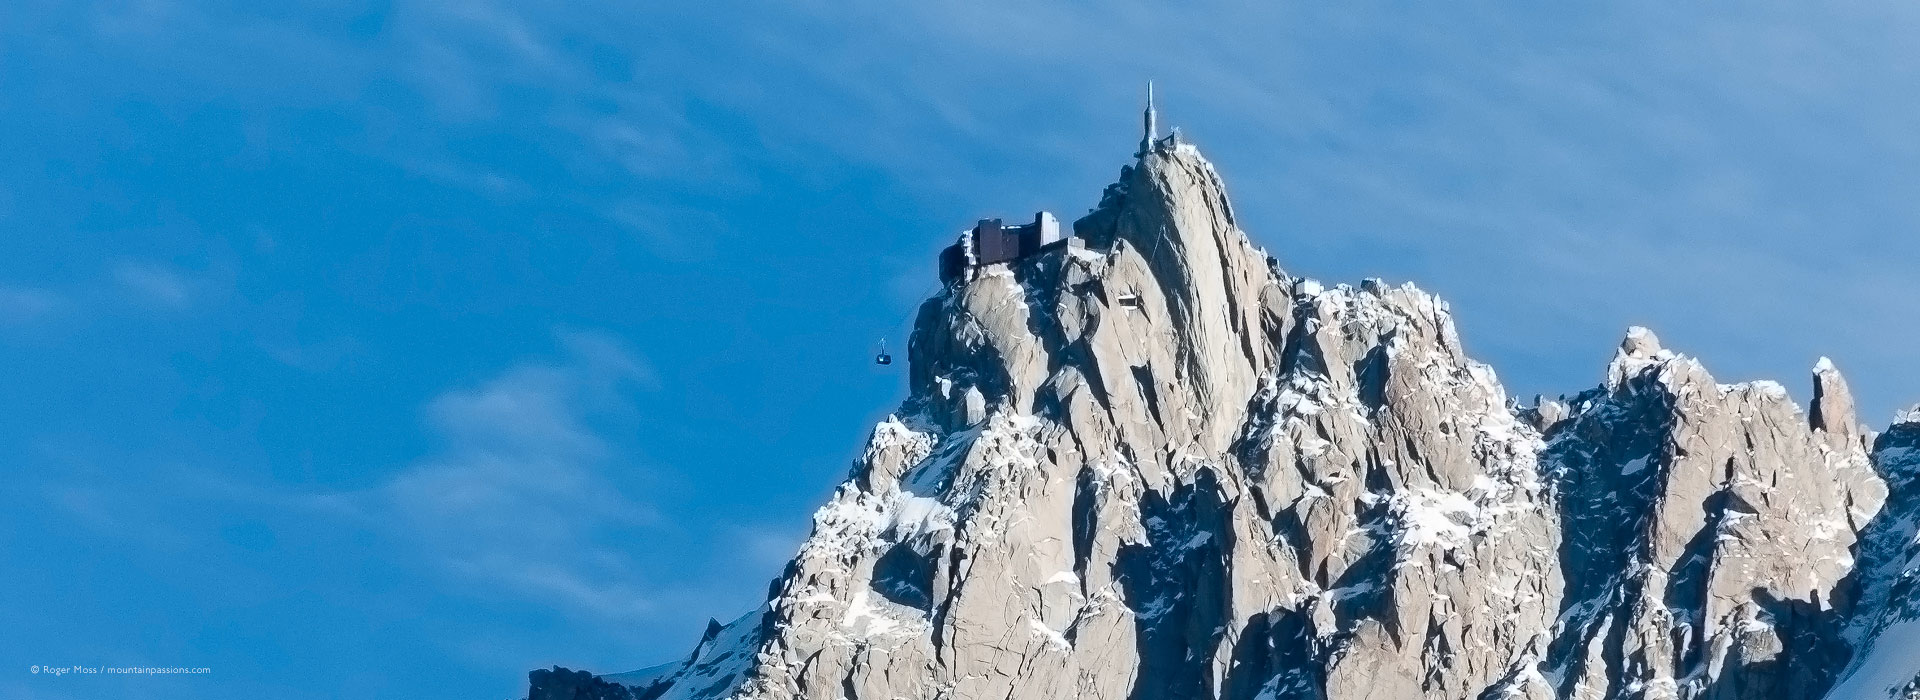 Distant view of Aiguille du Midi cable-car and summit